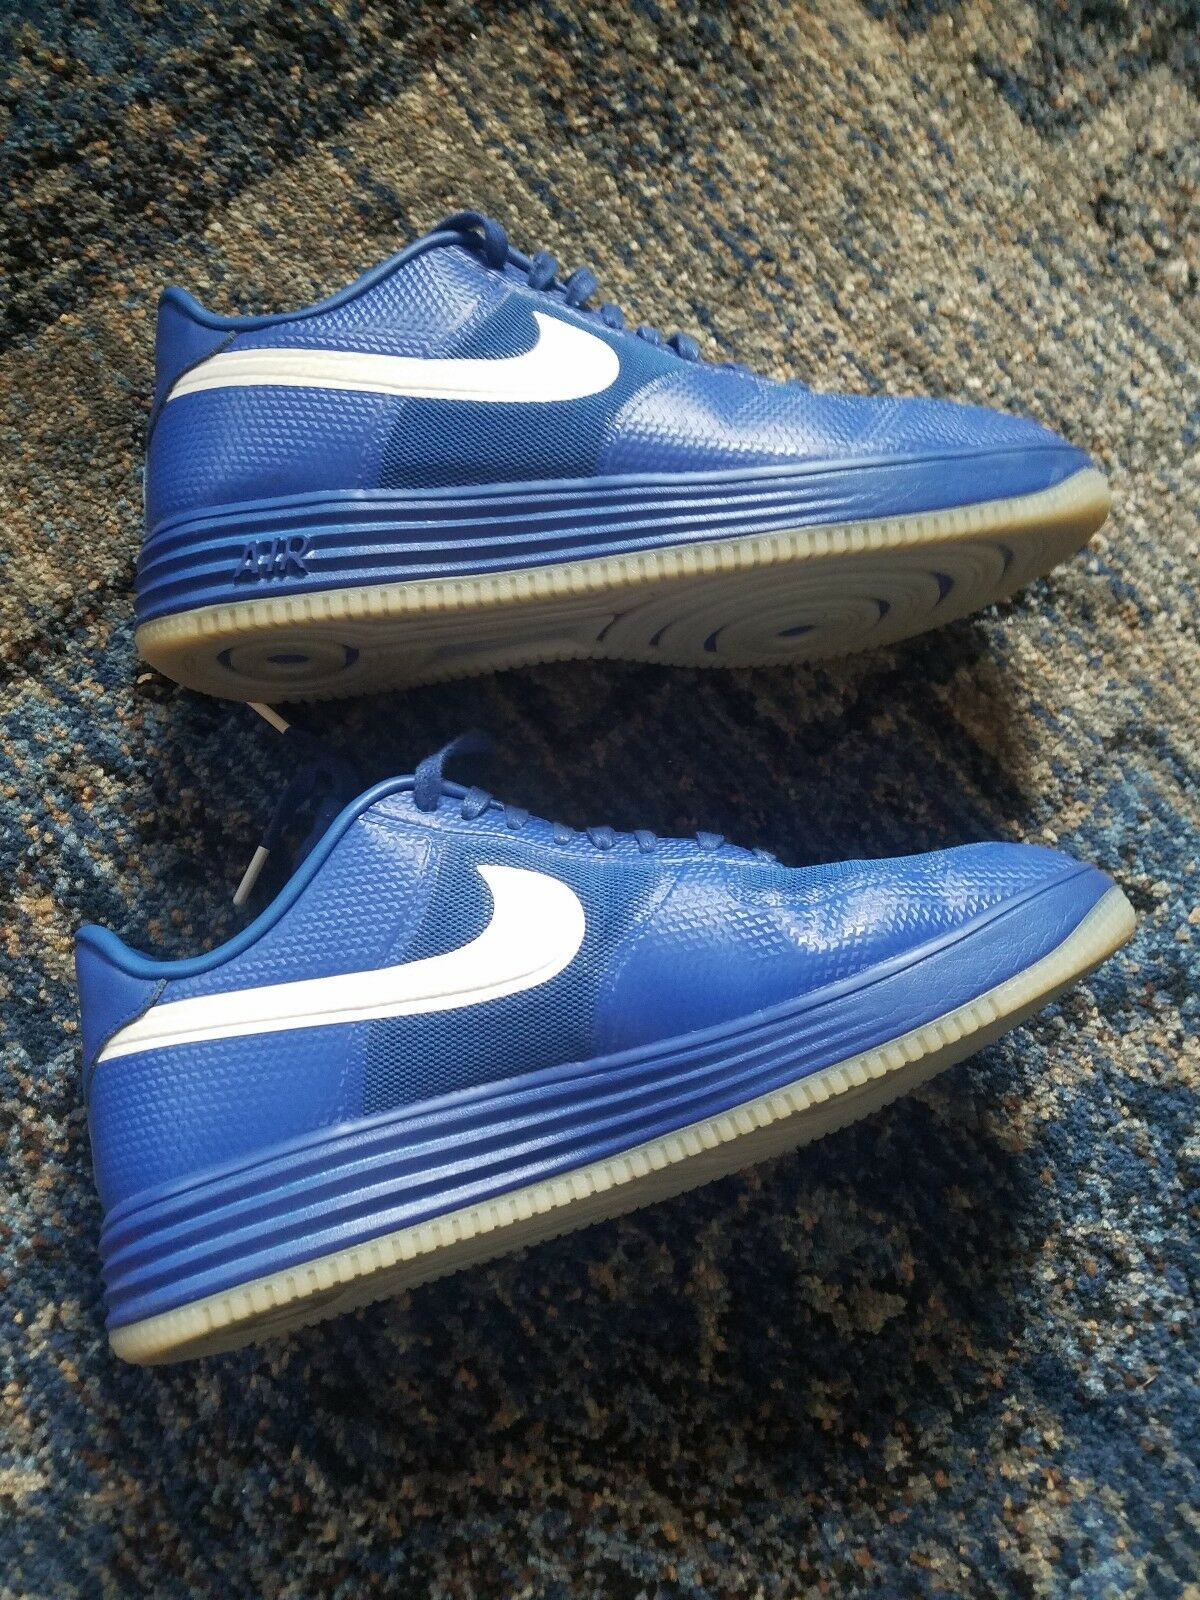 Nike shoes Sneakers Lunar Force 1 Fuse -- SIZE 12 MENS color blueE